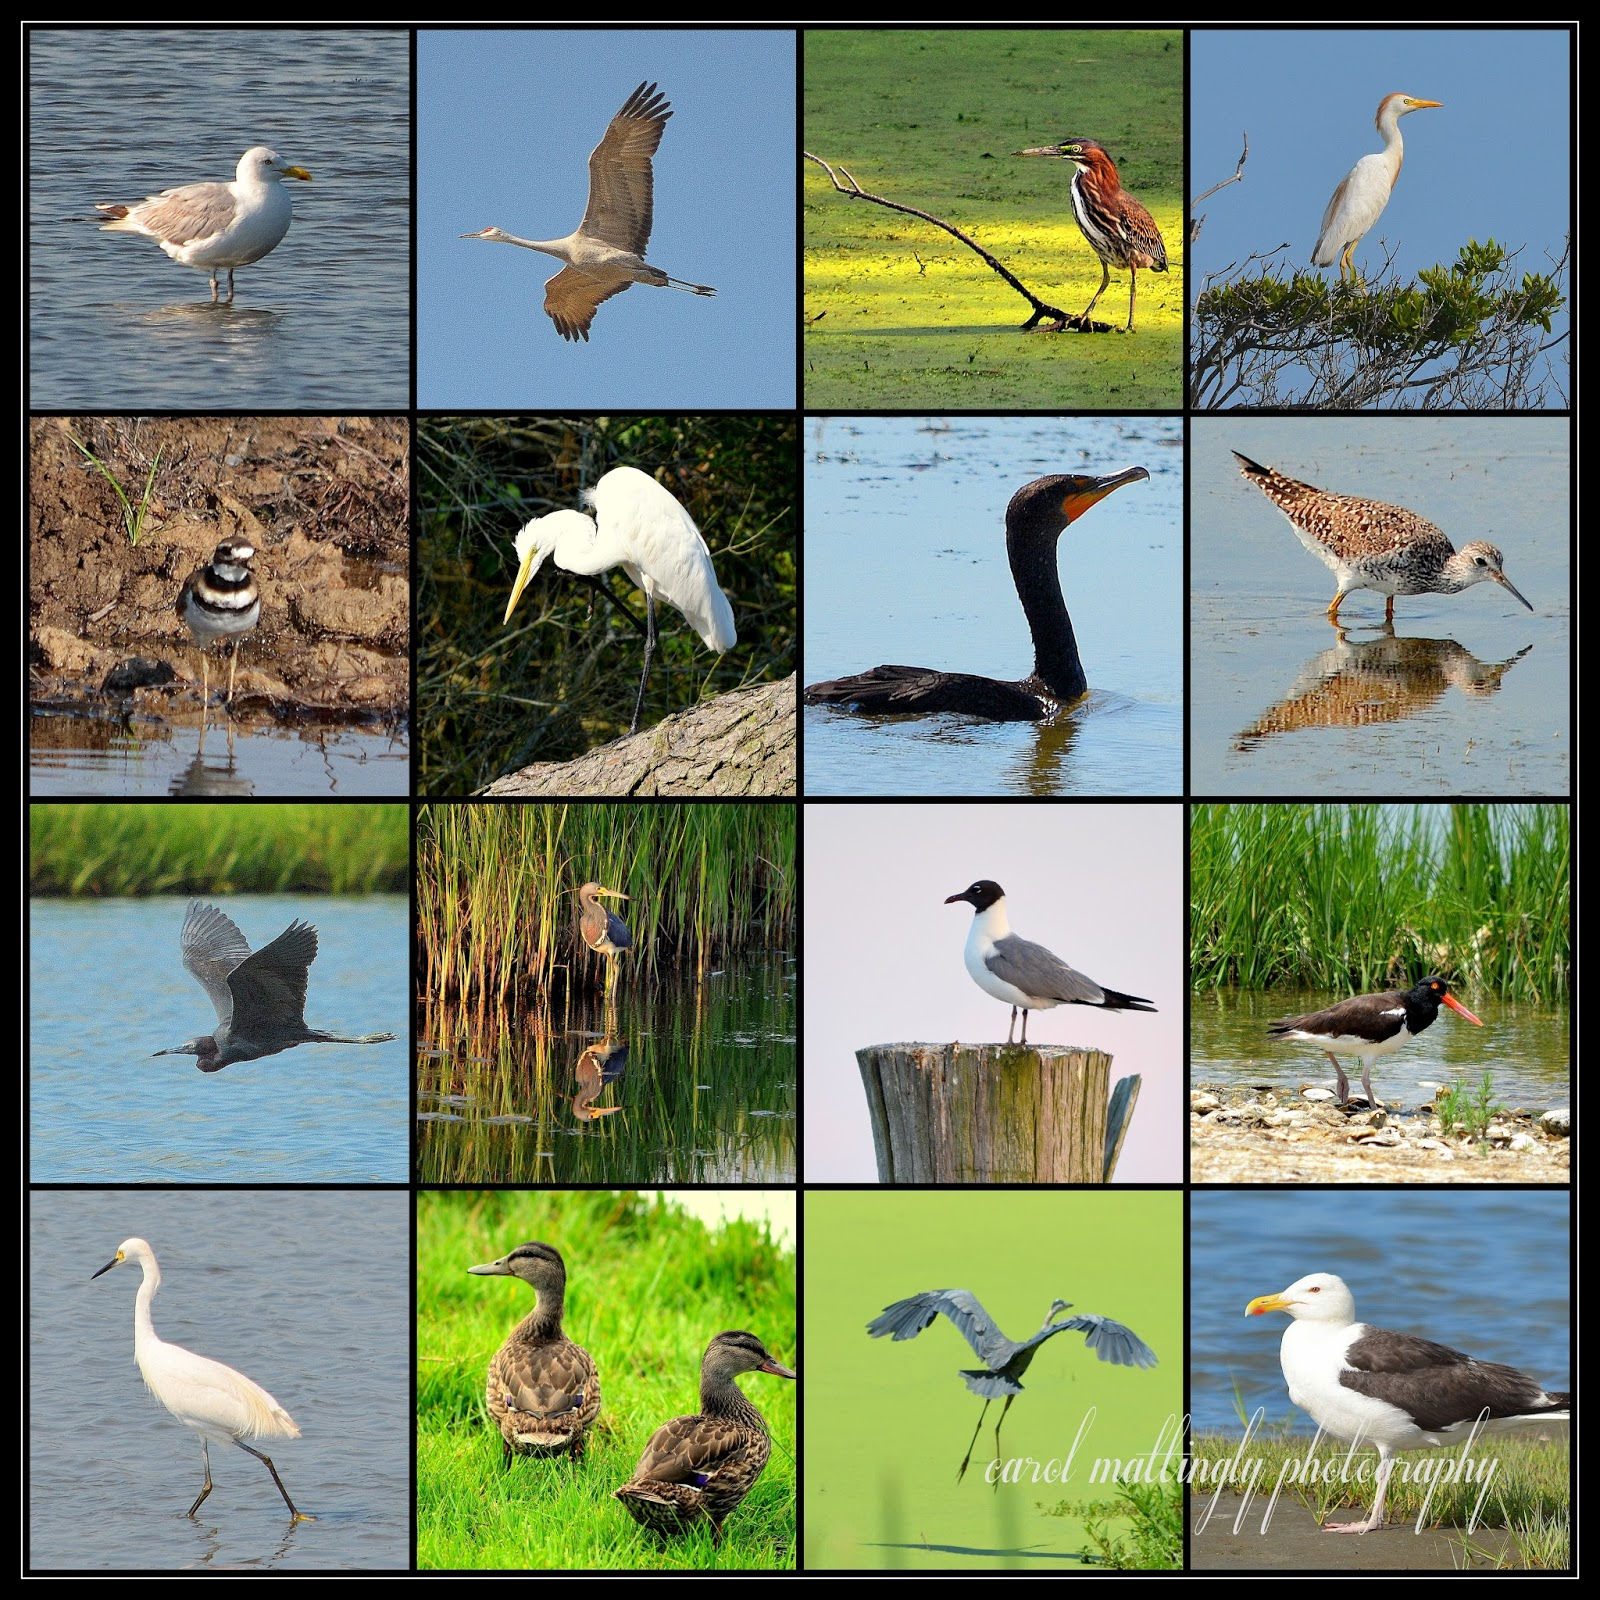 Carol Mattingly Photography 2013 Birds In Review